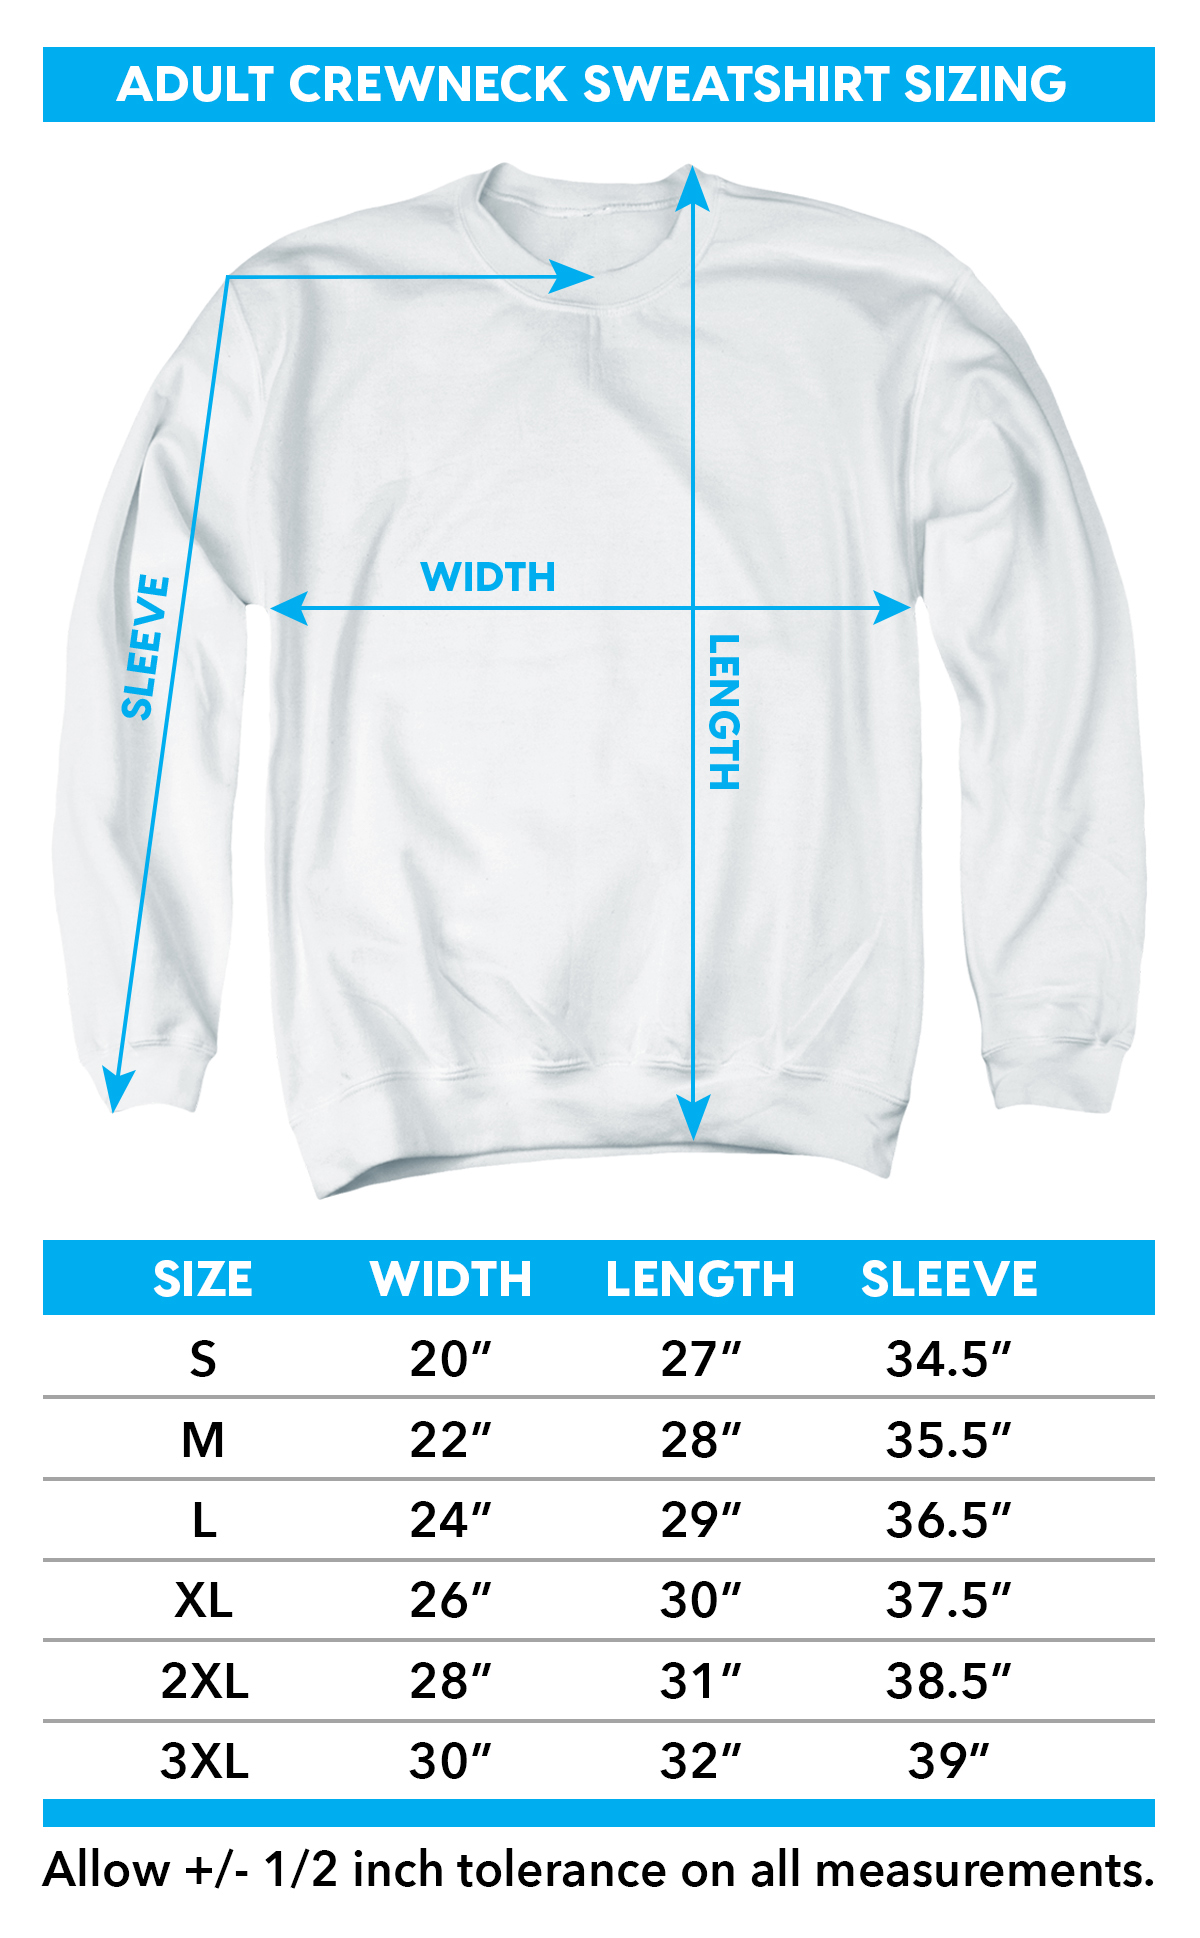 Sizing chart for the The Love Boat Original Booze Cruise crewneck sweatshirt